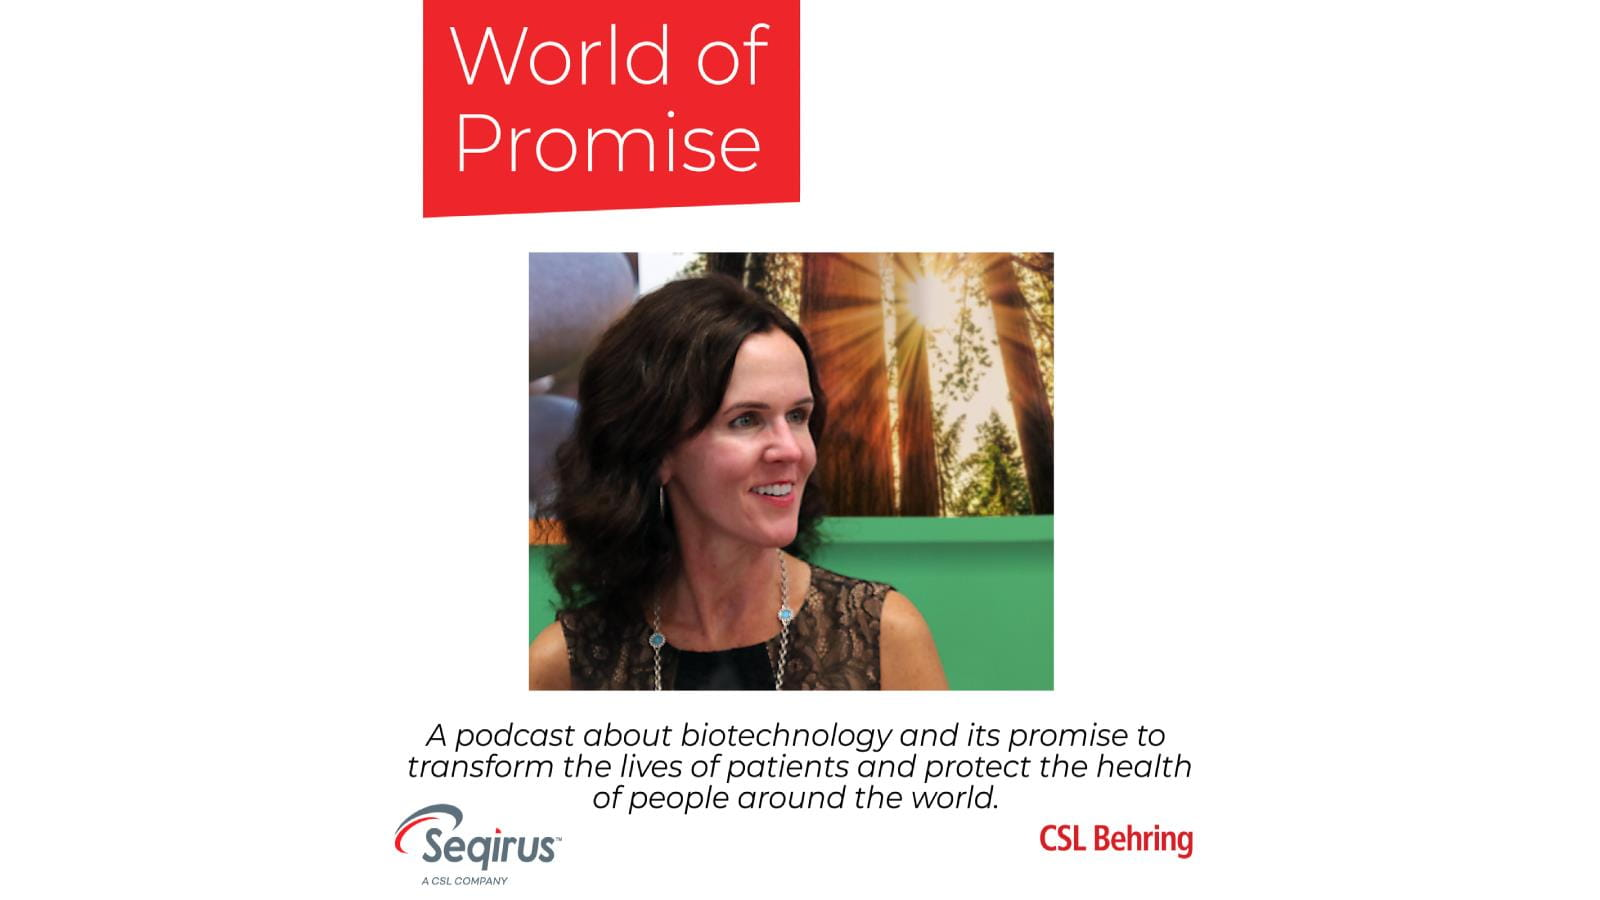 Elizabeth Walker, Executive Vice President and Chief Human Resources Officer for CSL Limited